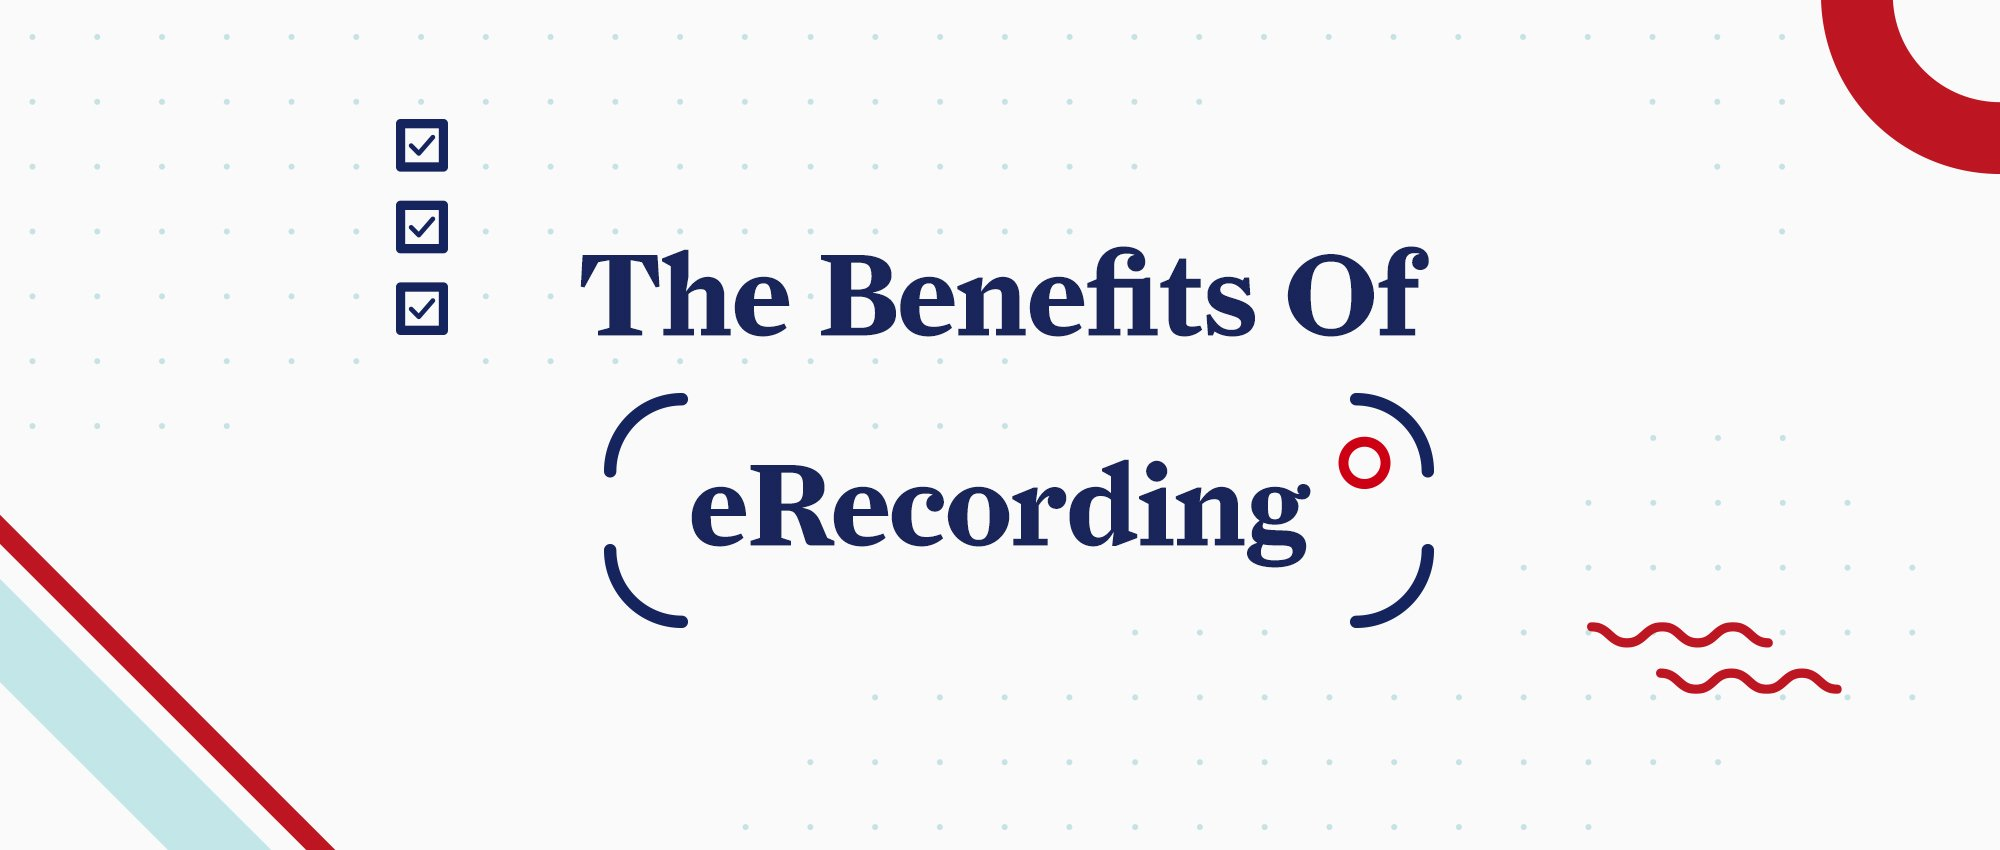 The Benefits of eRecording, graphic image inside a video